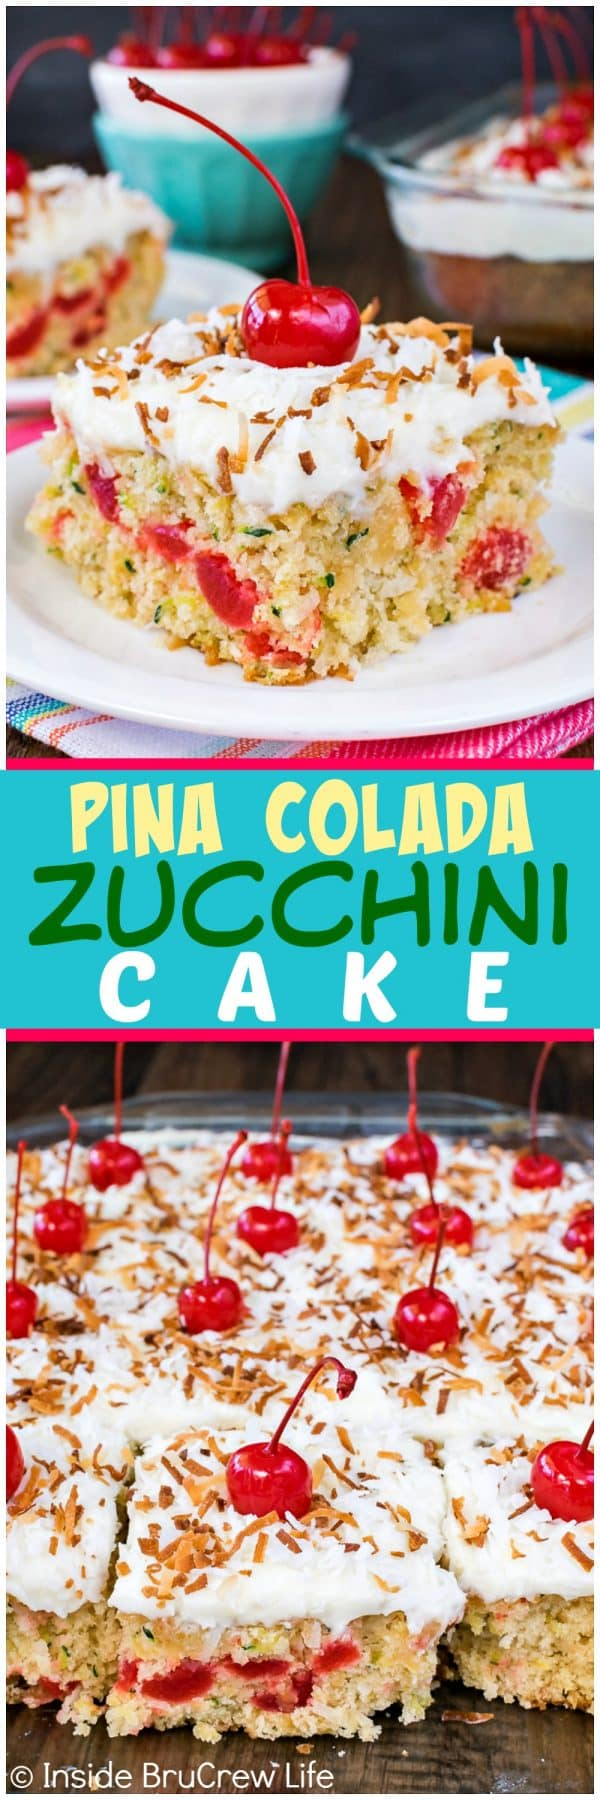 Pina Colada Zucchini Cake - this homemade soft zucchini cake is loaded with coconut and pineapple. This is a great summer dessert recipe!